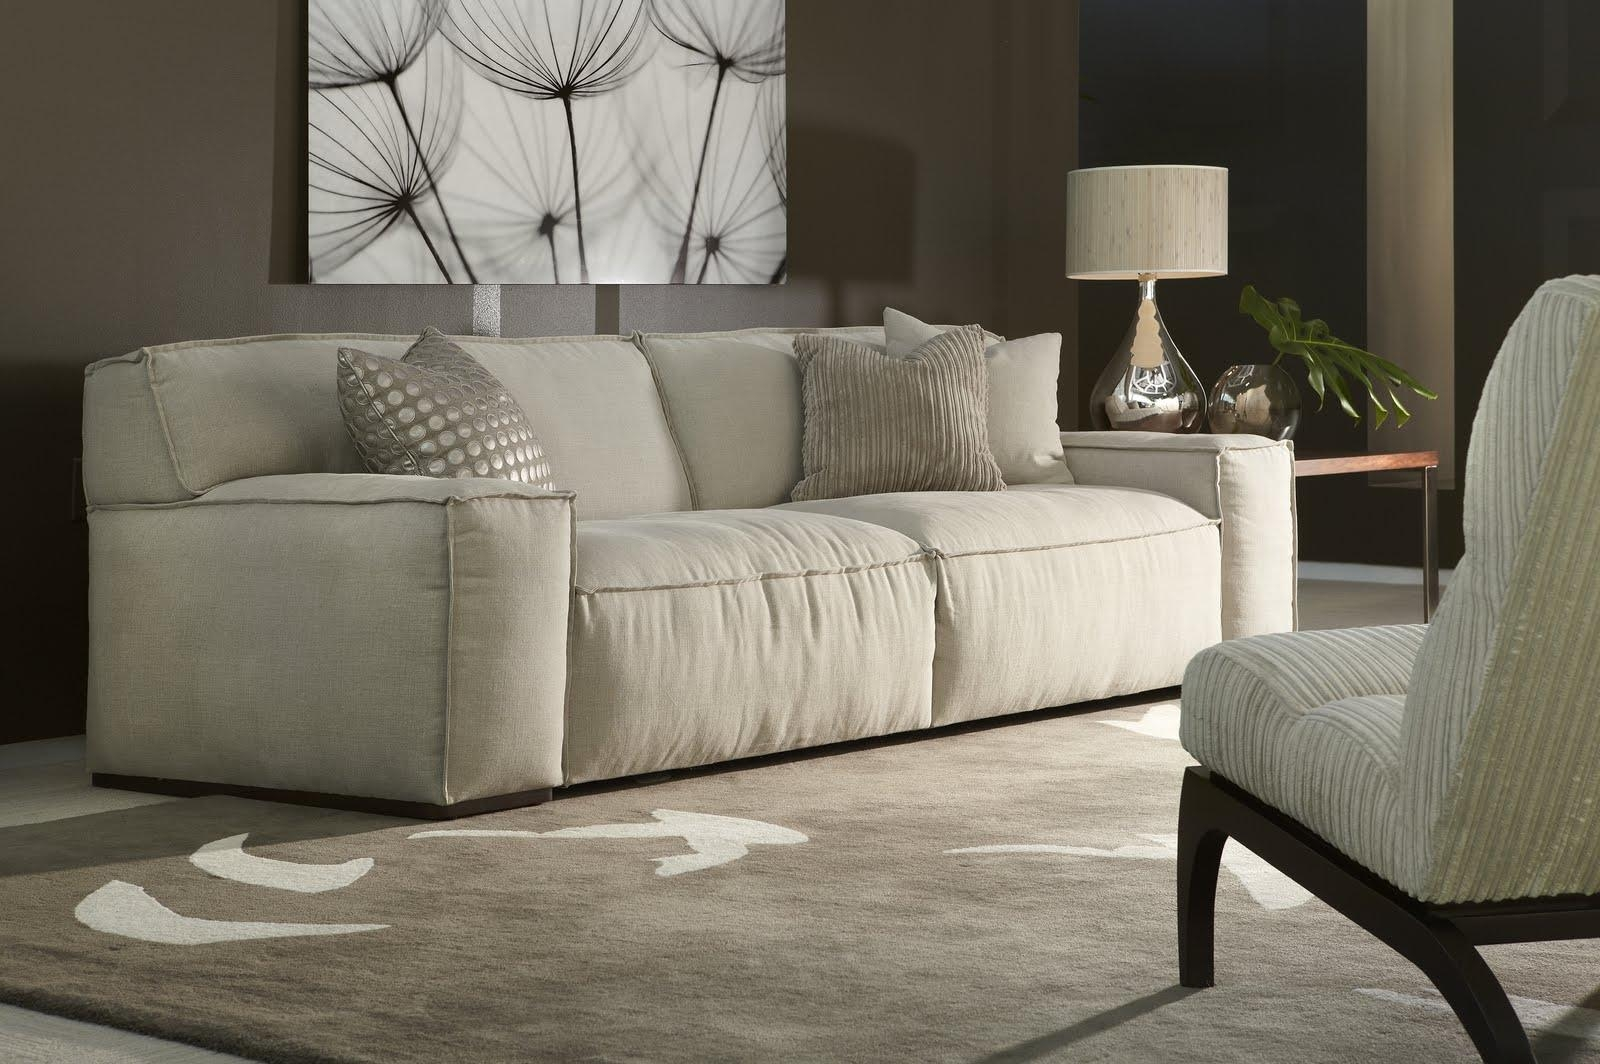 Sofas Center : Excellent Down Sectional Sofa Images Concept For Down Filled Sofas And Sectionals (View 4 of 15)